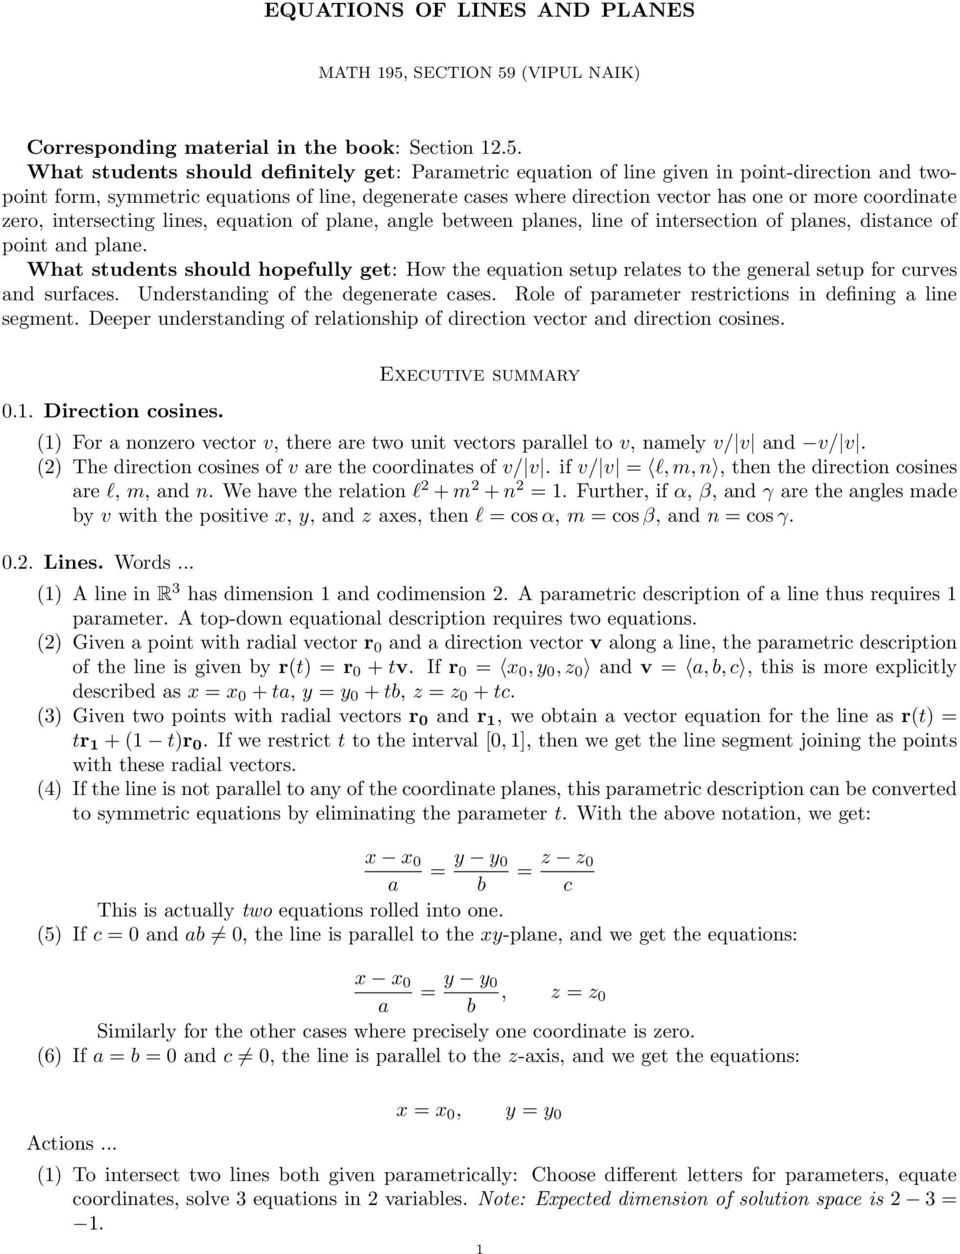 (VIPUL NAIK) Corresponding mteril in the ook: Section 12.5.